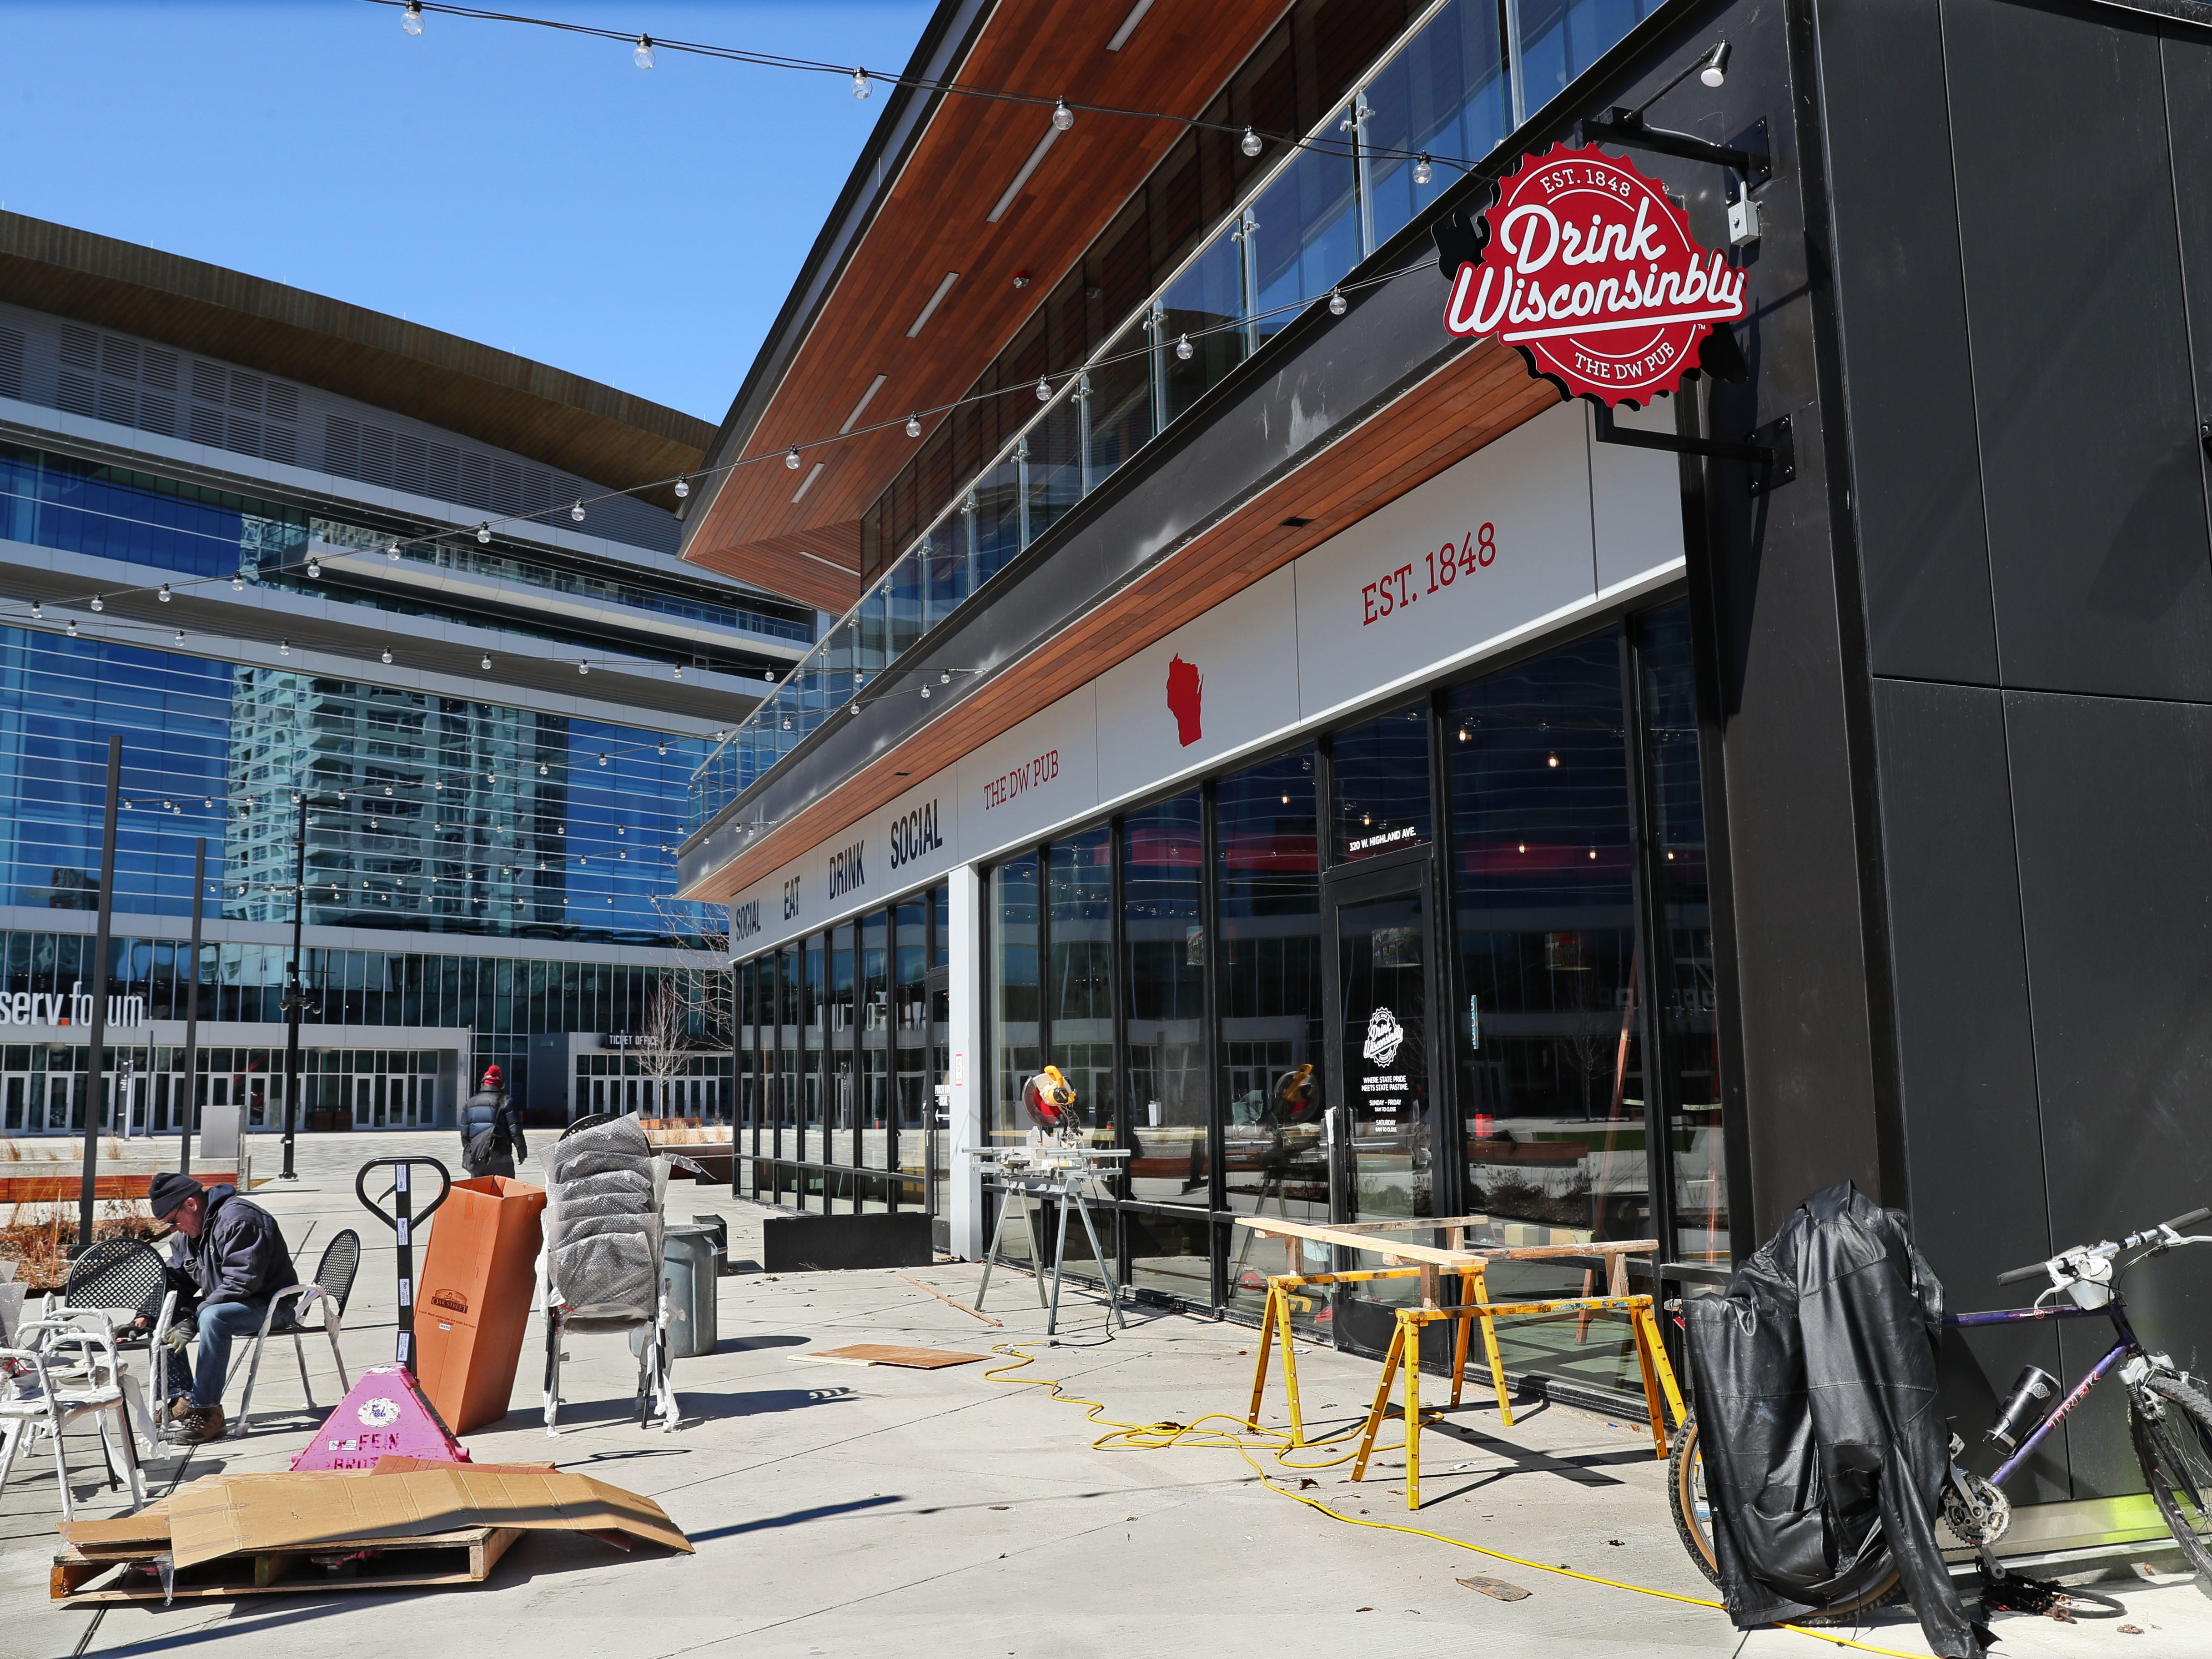 Workers unwrap chairs on the patio in front of the new Drink Wisconsinbly Pub. The bar is making final preparations for opening.